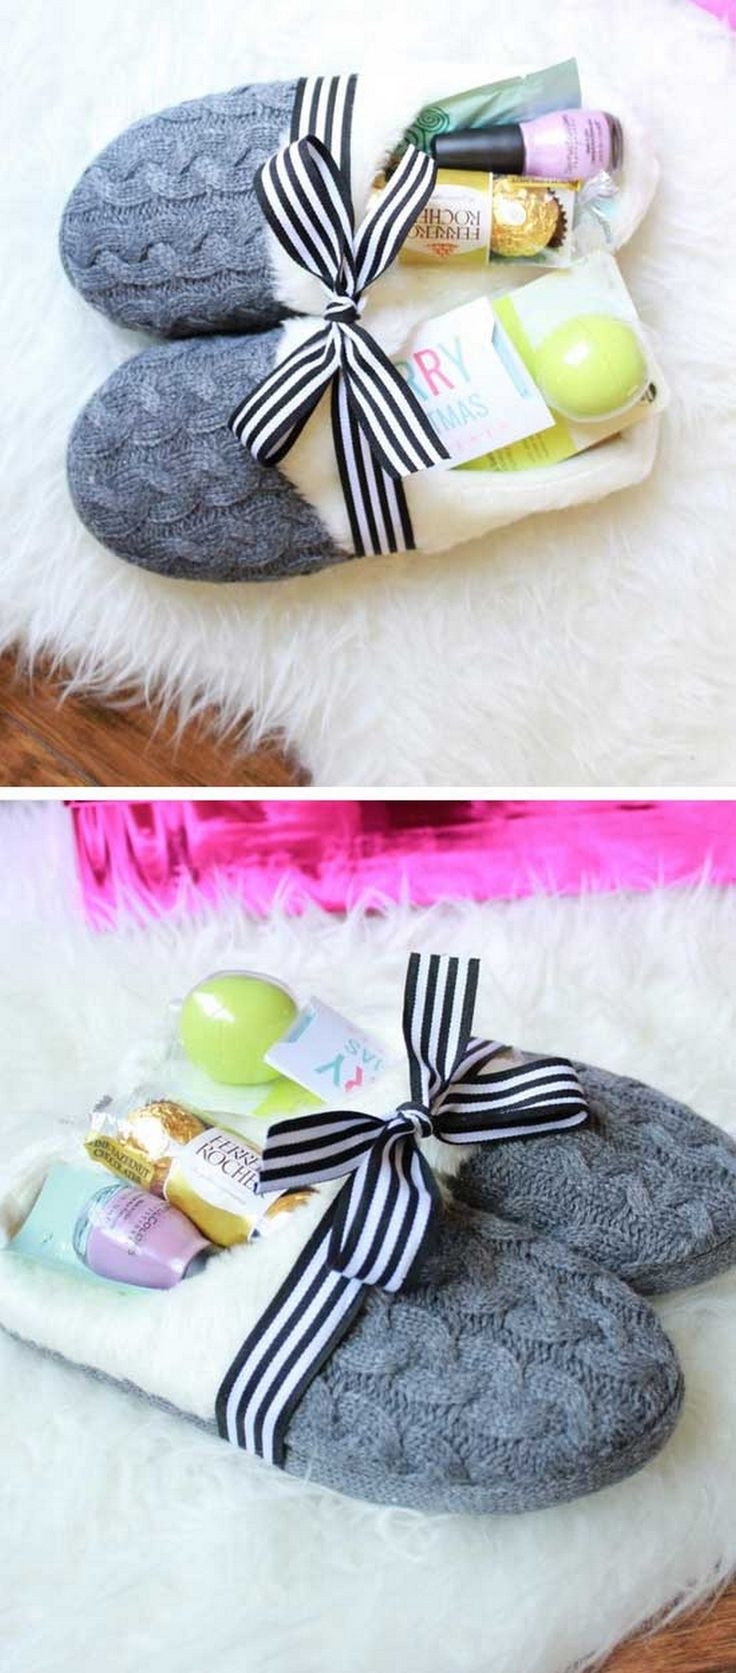 Best ideas about Diy Gift Ideas For Friends . Save or Pin Best 25 Diy best friend ts ideas on Pinterest Now.